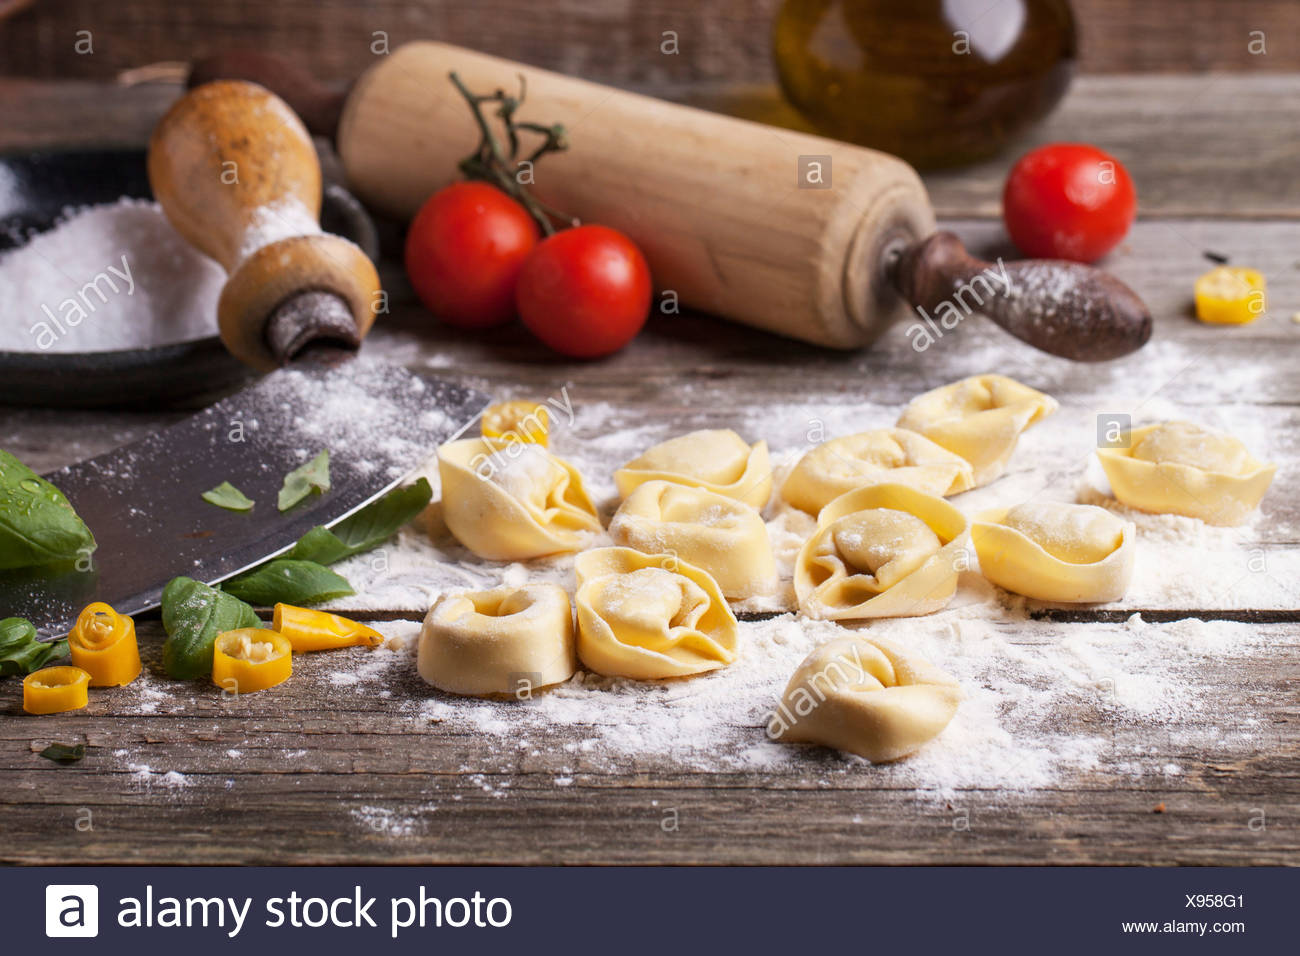 Homemade Pasta Ravioli On Old Wooden Table With Flour, Basil, Tomatoes And Vintage  Kitchen Accessories.